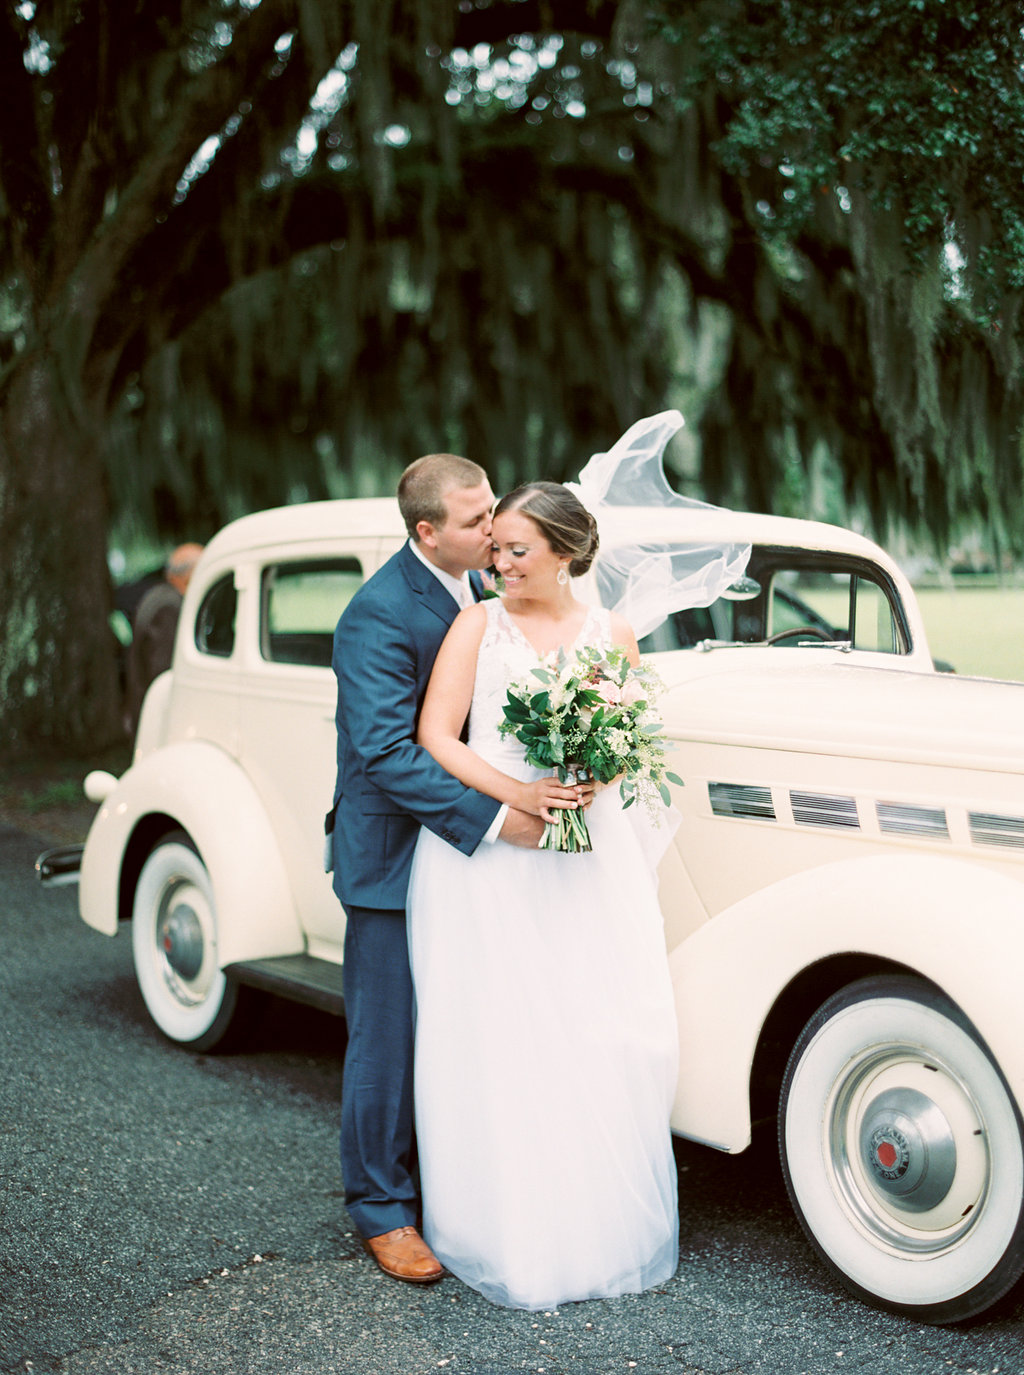 the-happy-bloom-photography-ivory-and-beau-wedding-planning-ivory-and-beau-bridal-boutique-whitfield-chapel-wedding-10-downing-wedding-savannah-wedding-historic-savannah-wedding-savannah-wedding-planner-savannah-weddings-a-to-zinnias-41.jpg